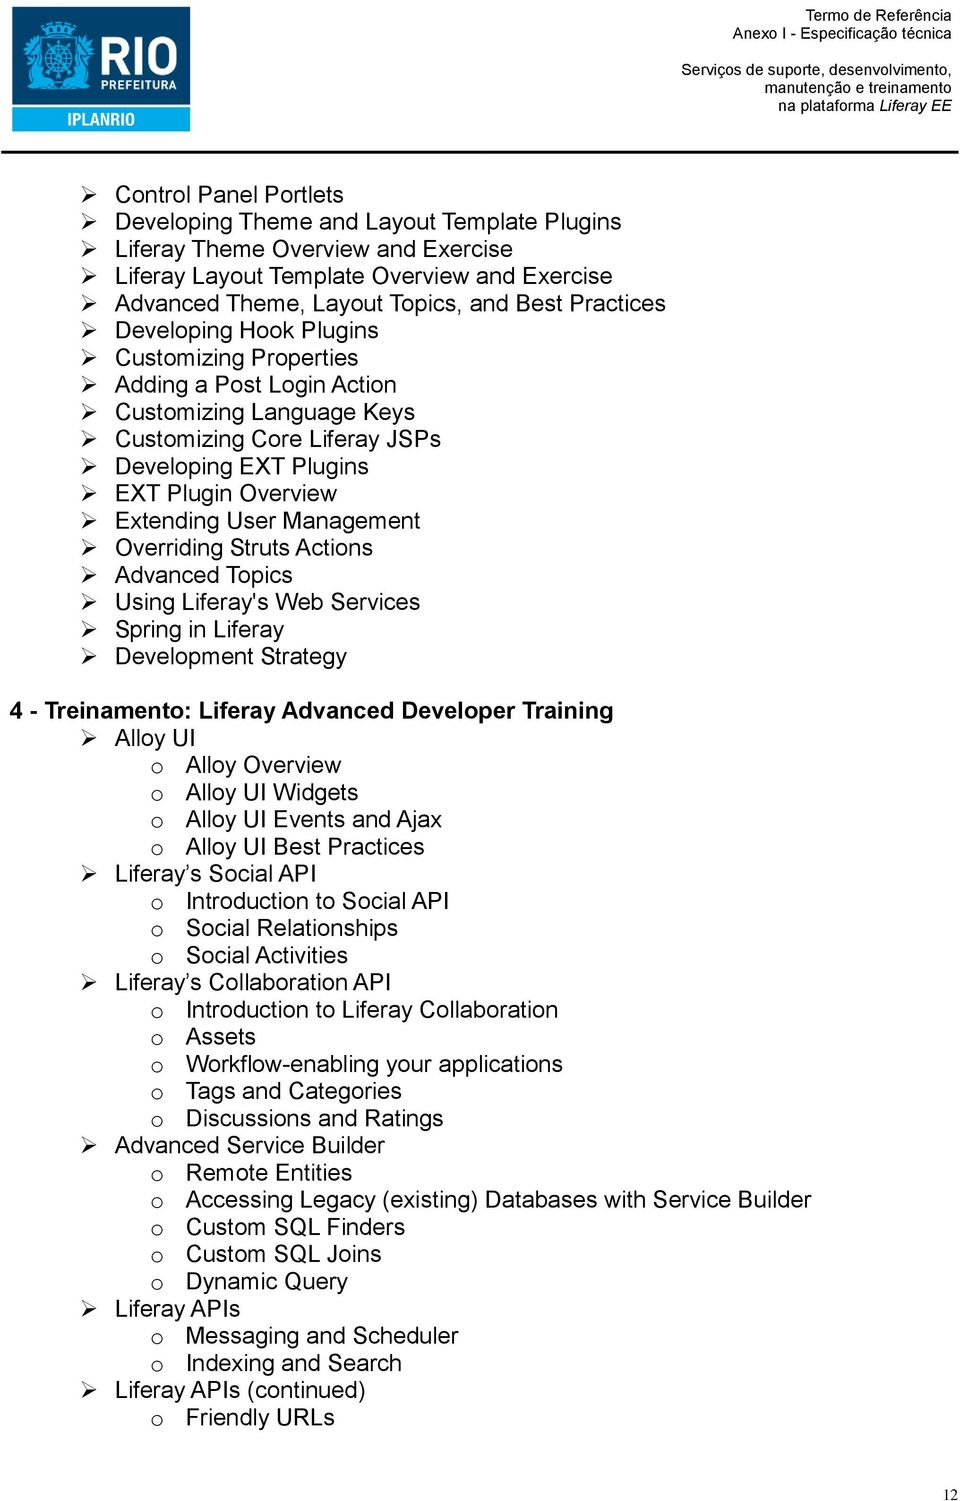 Overriding Struts Actions Advanced Topics Using Liferay's Web Services Spring in Liferay Development Strategy 4 - Treinamento: Liferay Advanced Developer Training Alloy UI o Alloy Overview o Alloy UI